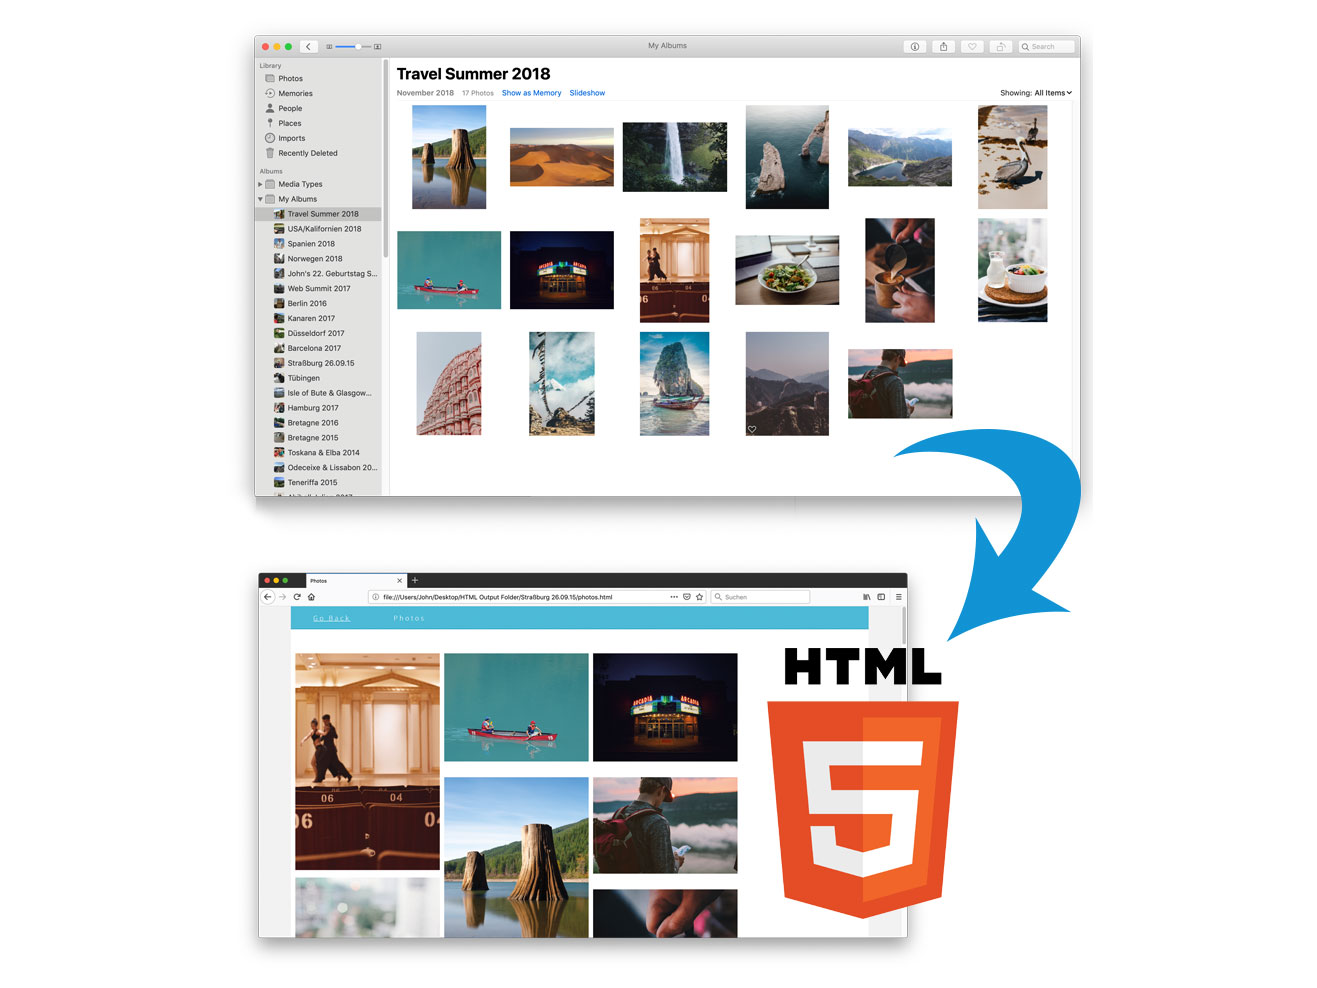 This macOS app creates HTML galleries from your Photos